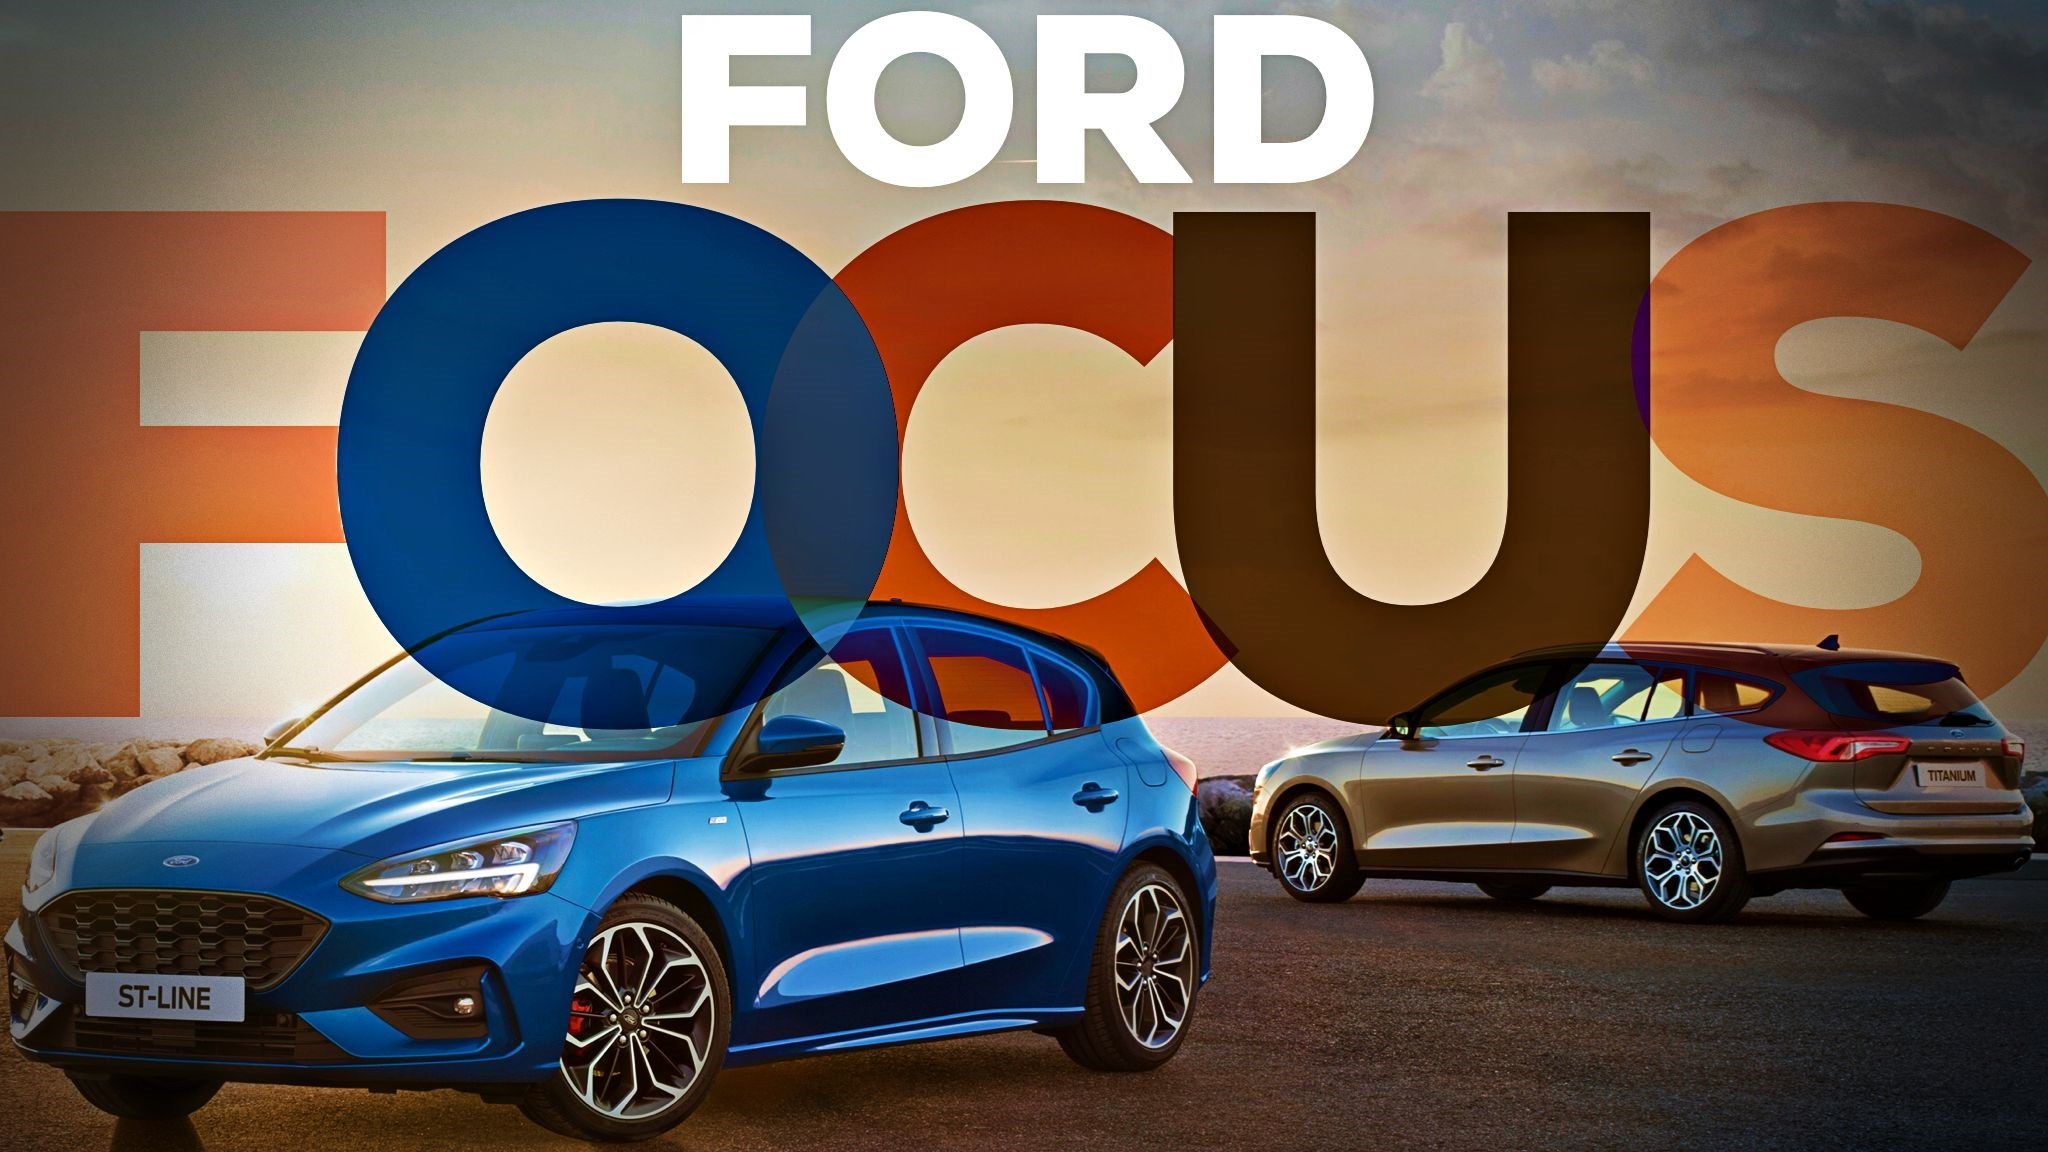 Ford's All-New Focus Revealed, Big Changes Afoot For MK4